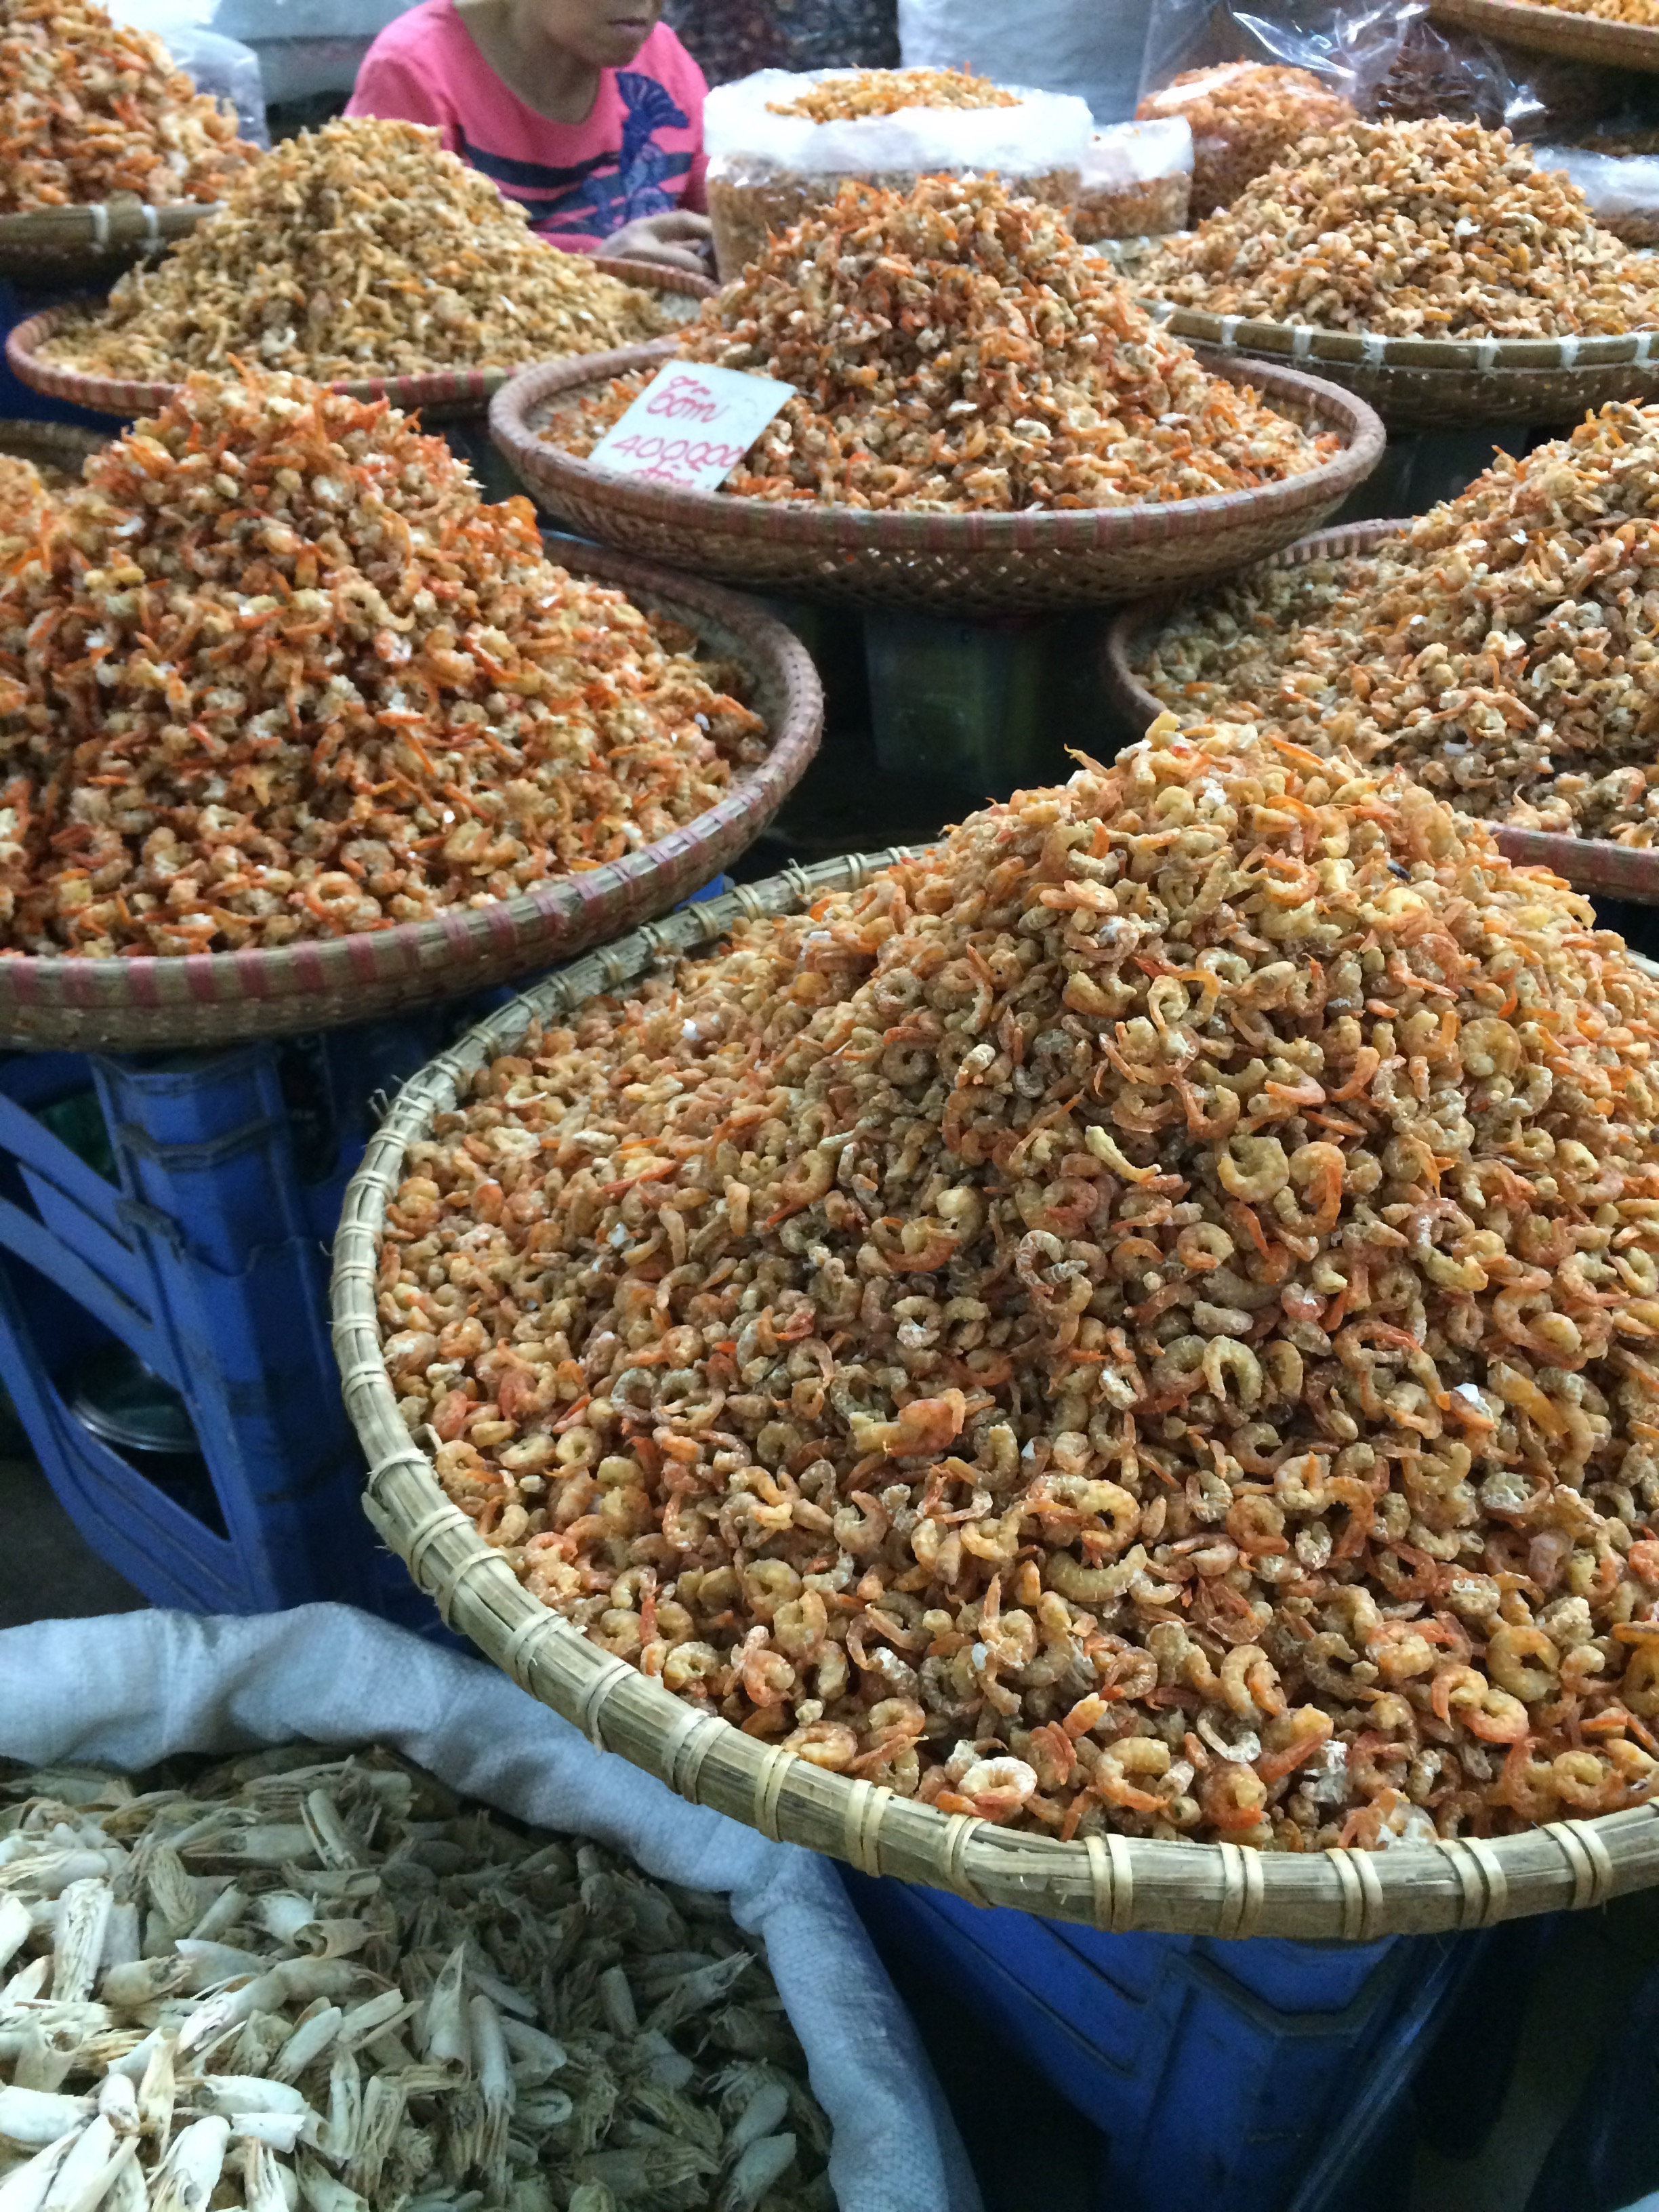 You didn't think there was just one kind of dried shrimp, did you?